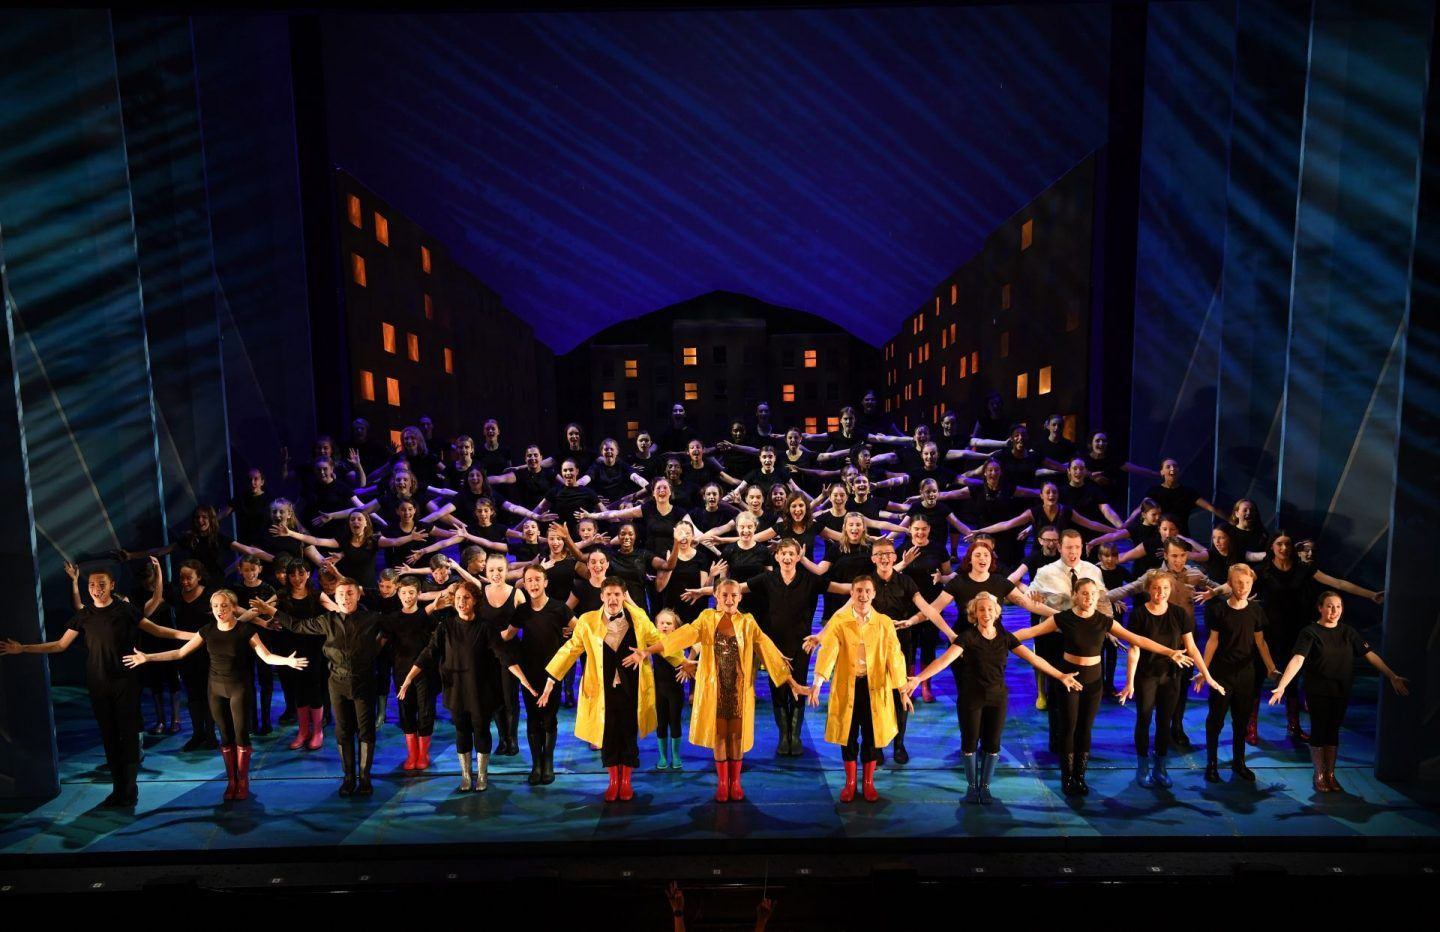 Theatre Review Singin In The Rain Theatre Reviews Dramatic Music Singing In The Rain